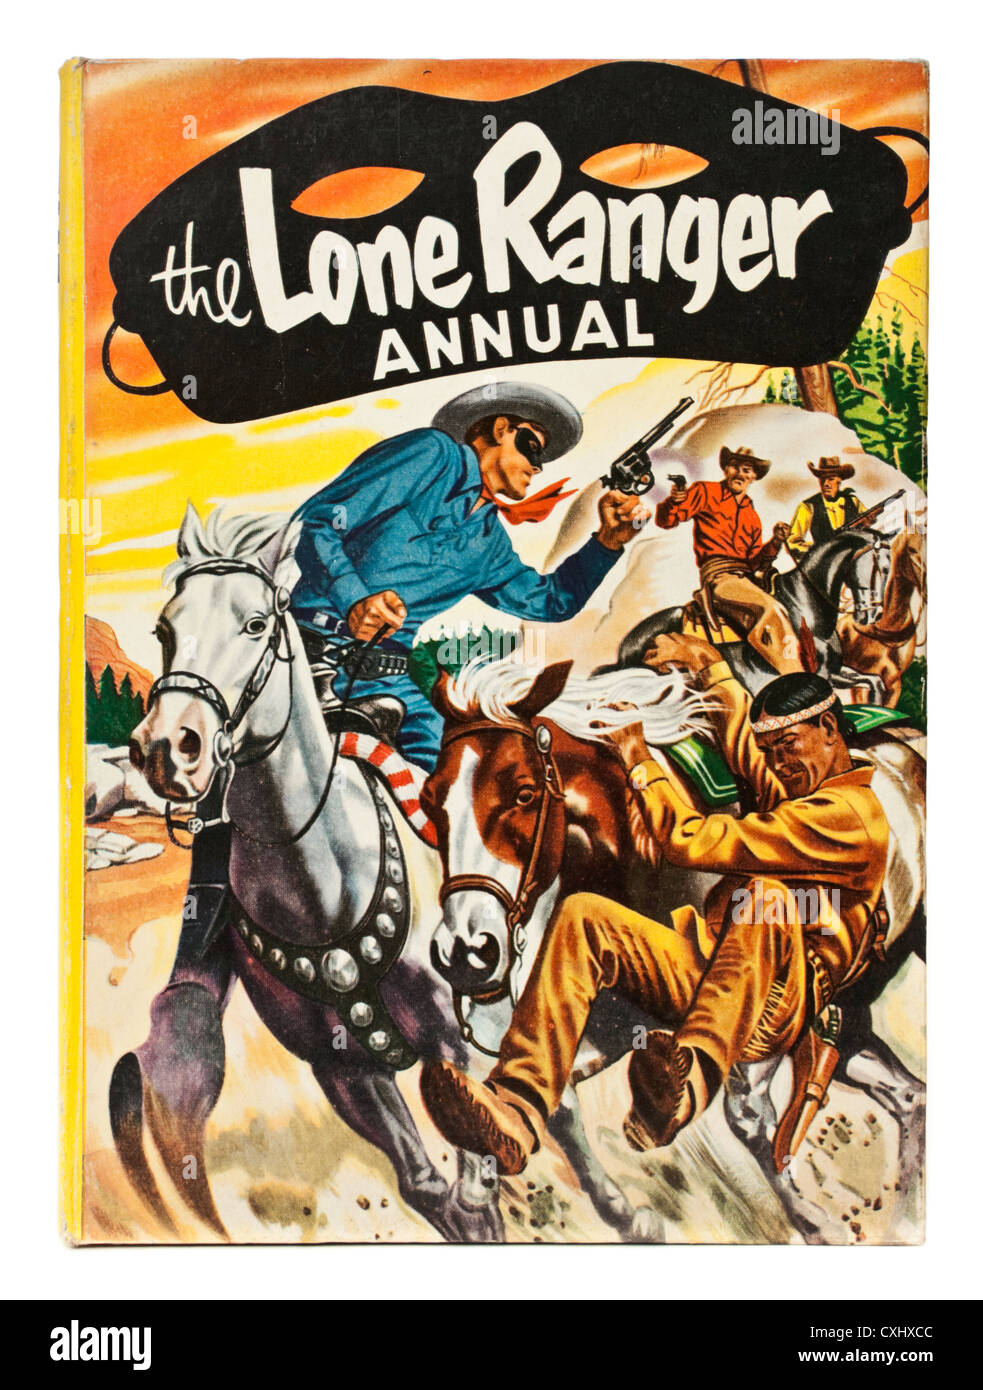 1956 Lone Ranger Annual, the 2nd annual to be published - Stock Image